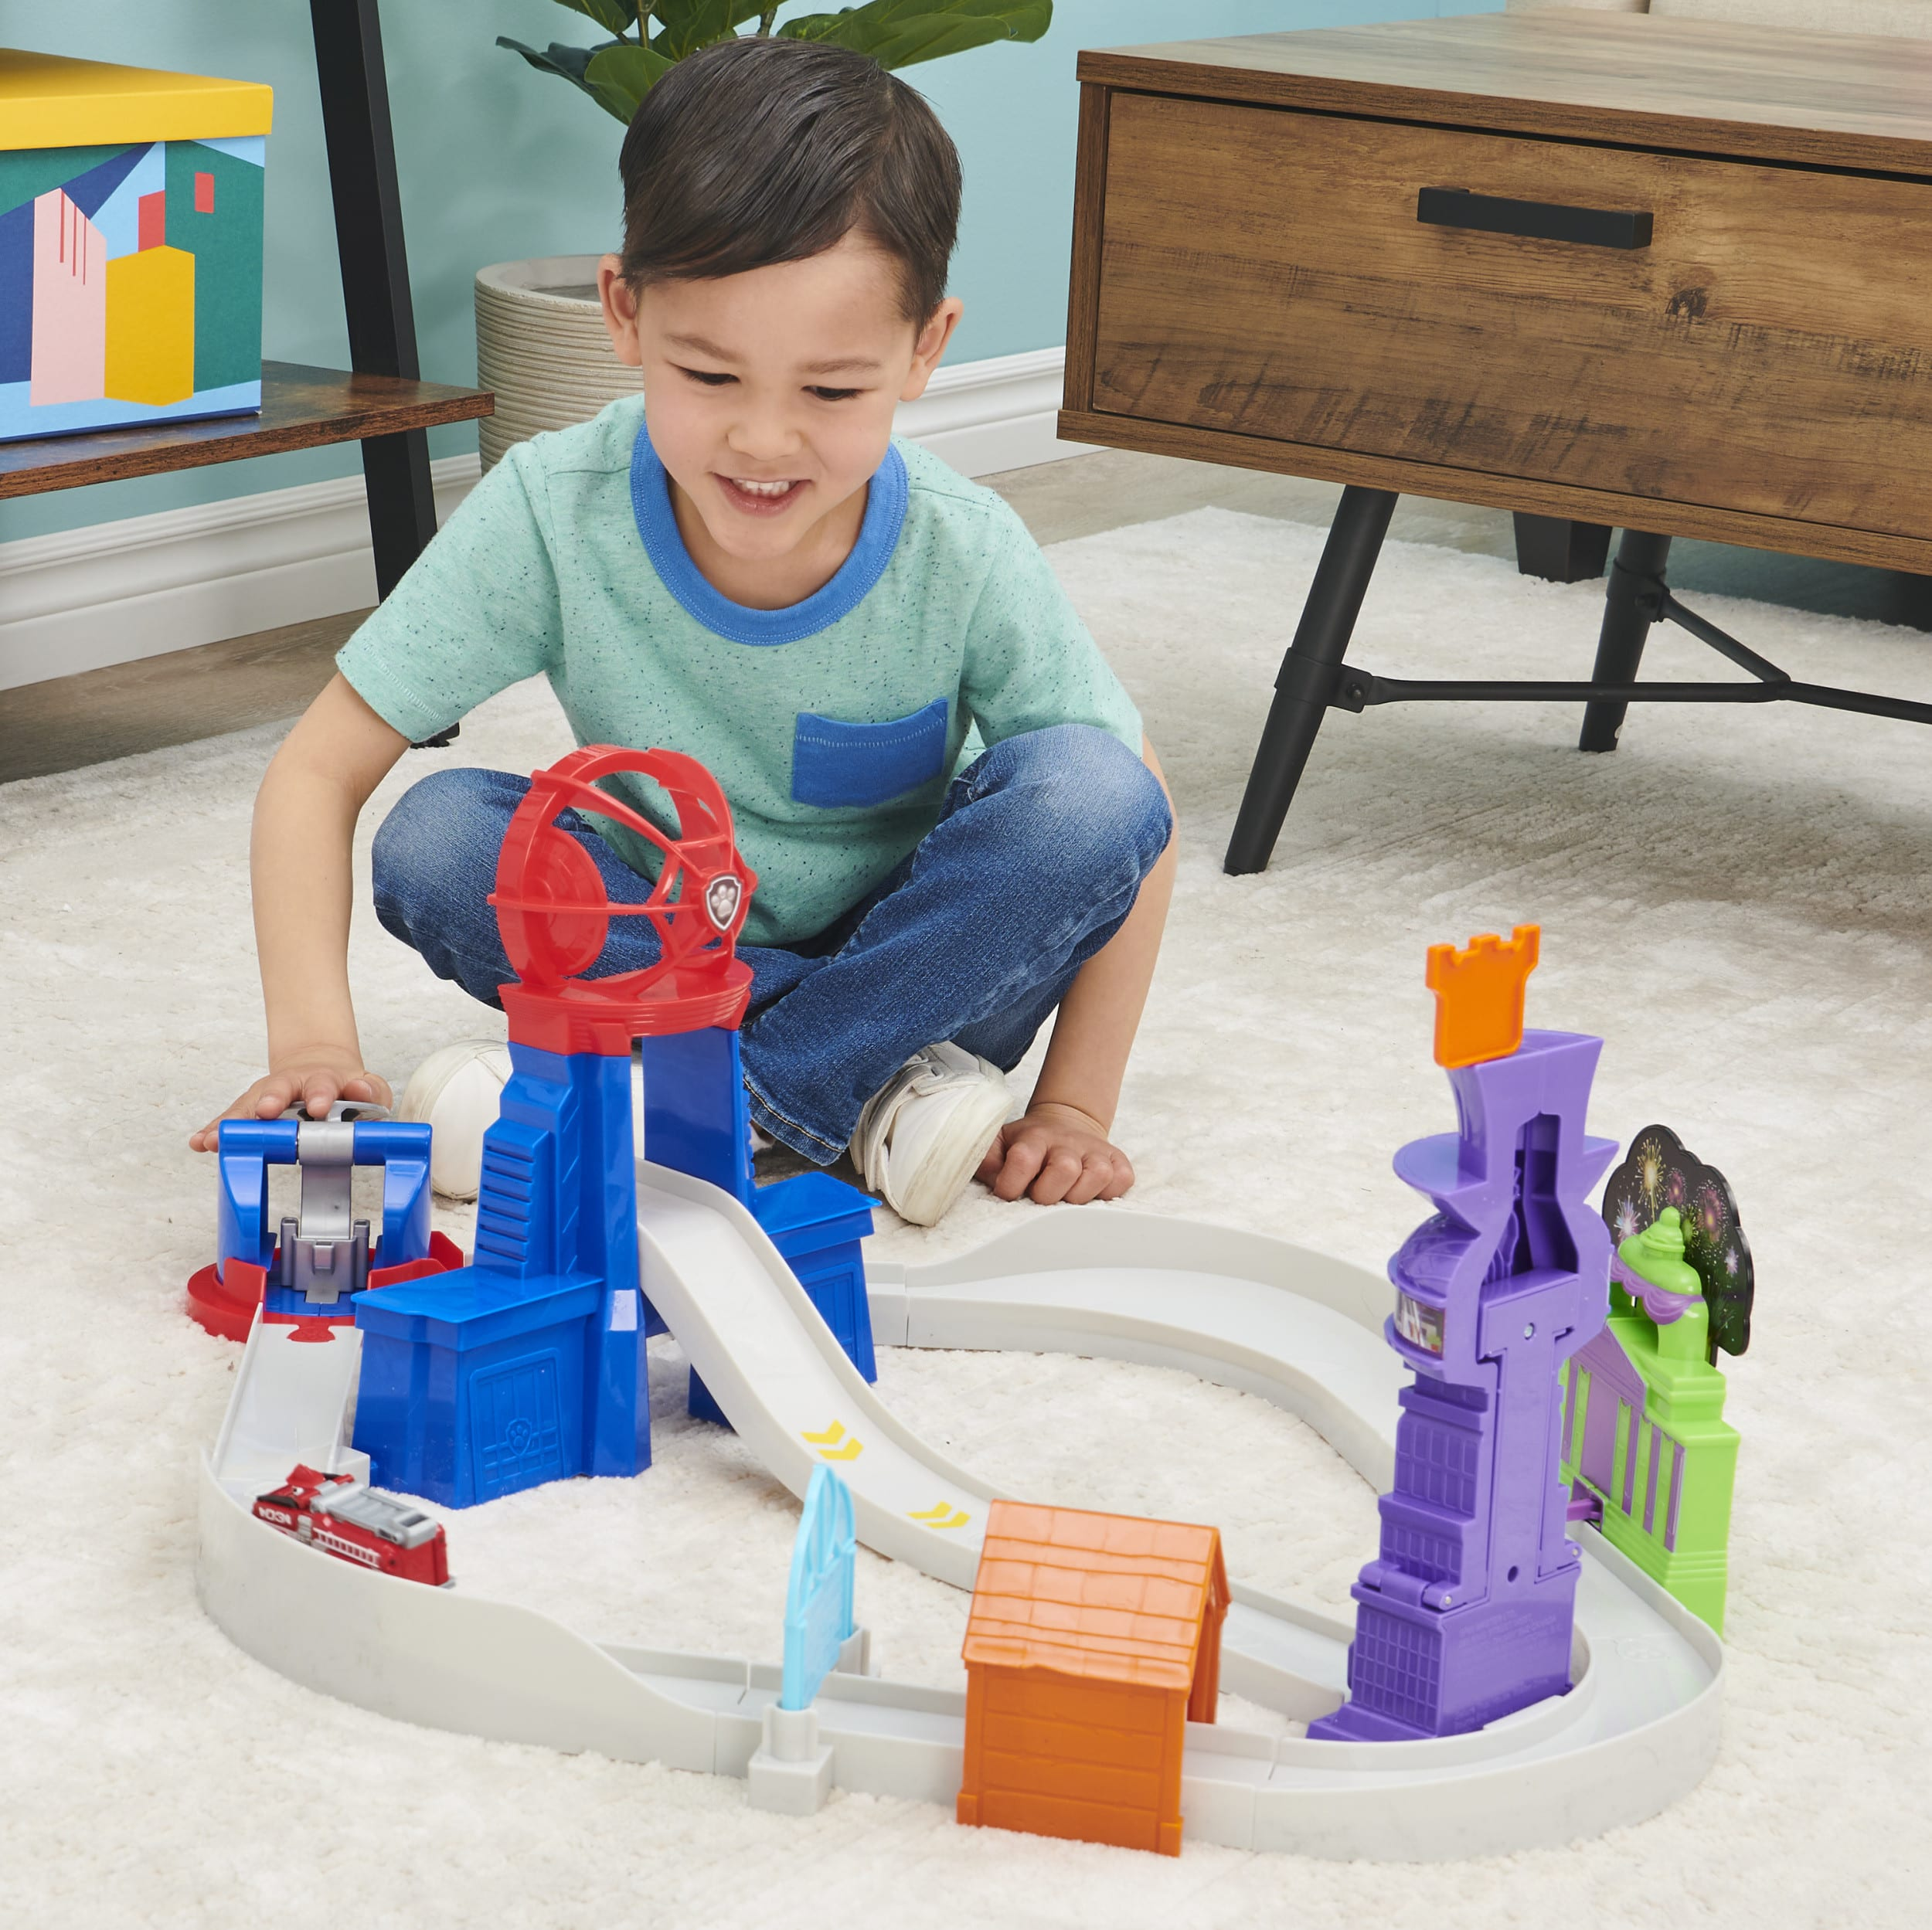 Discover Spin Master Ltd's PAW Patrol: The Movie racetrack at Walmart.